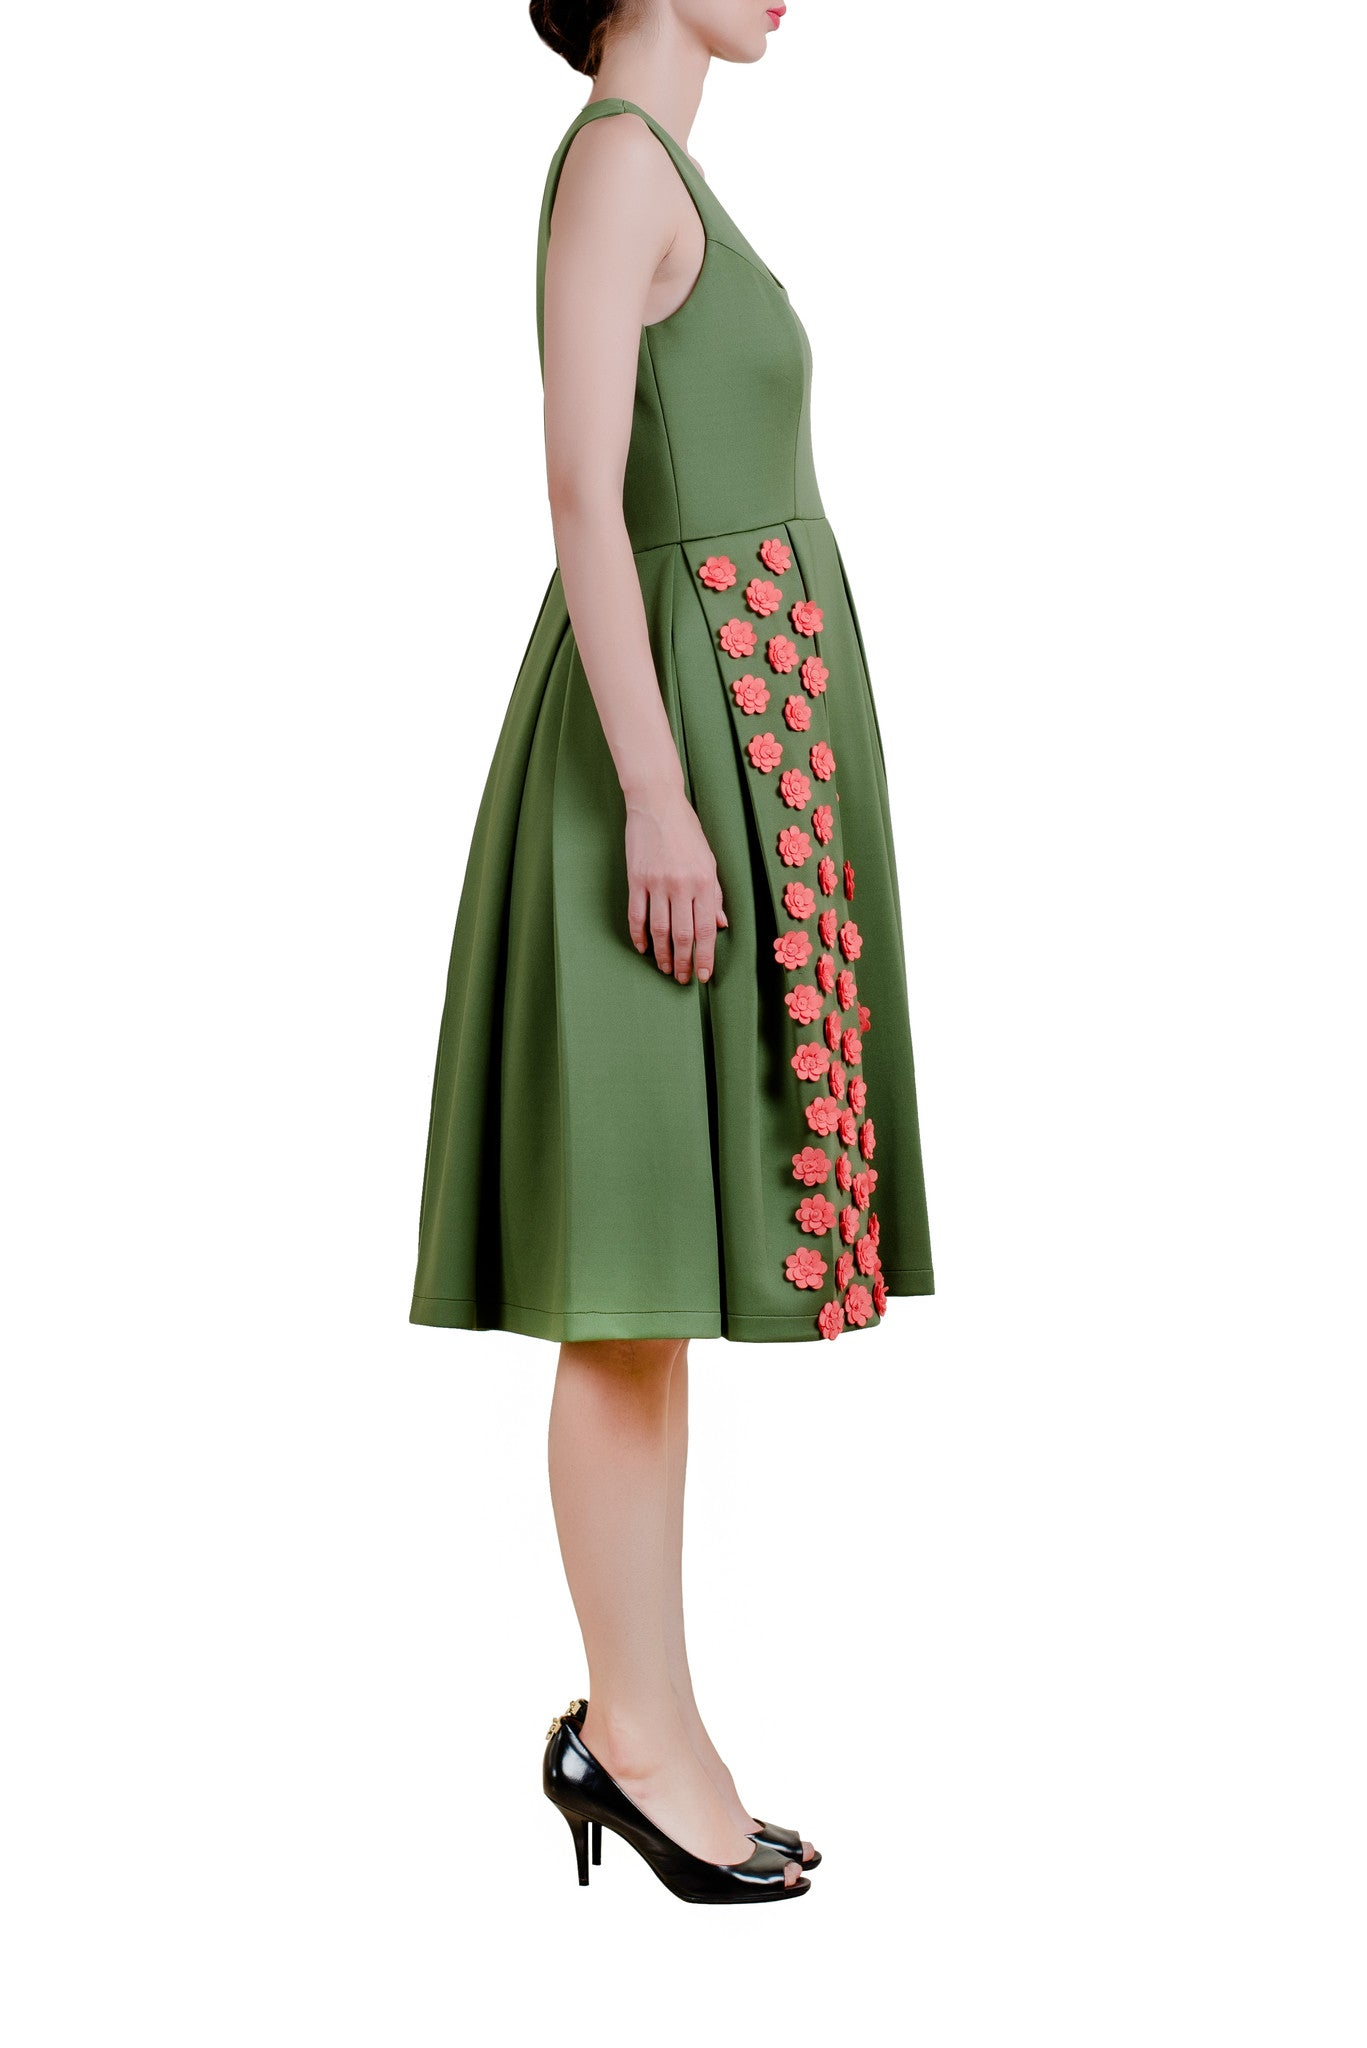 Olive Green Midi Dress With Peach Floral Motifs | Vintage Desi